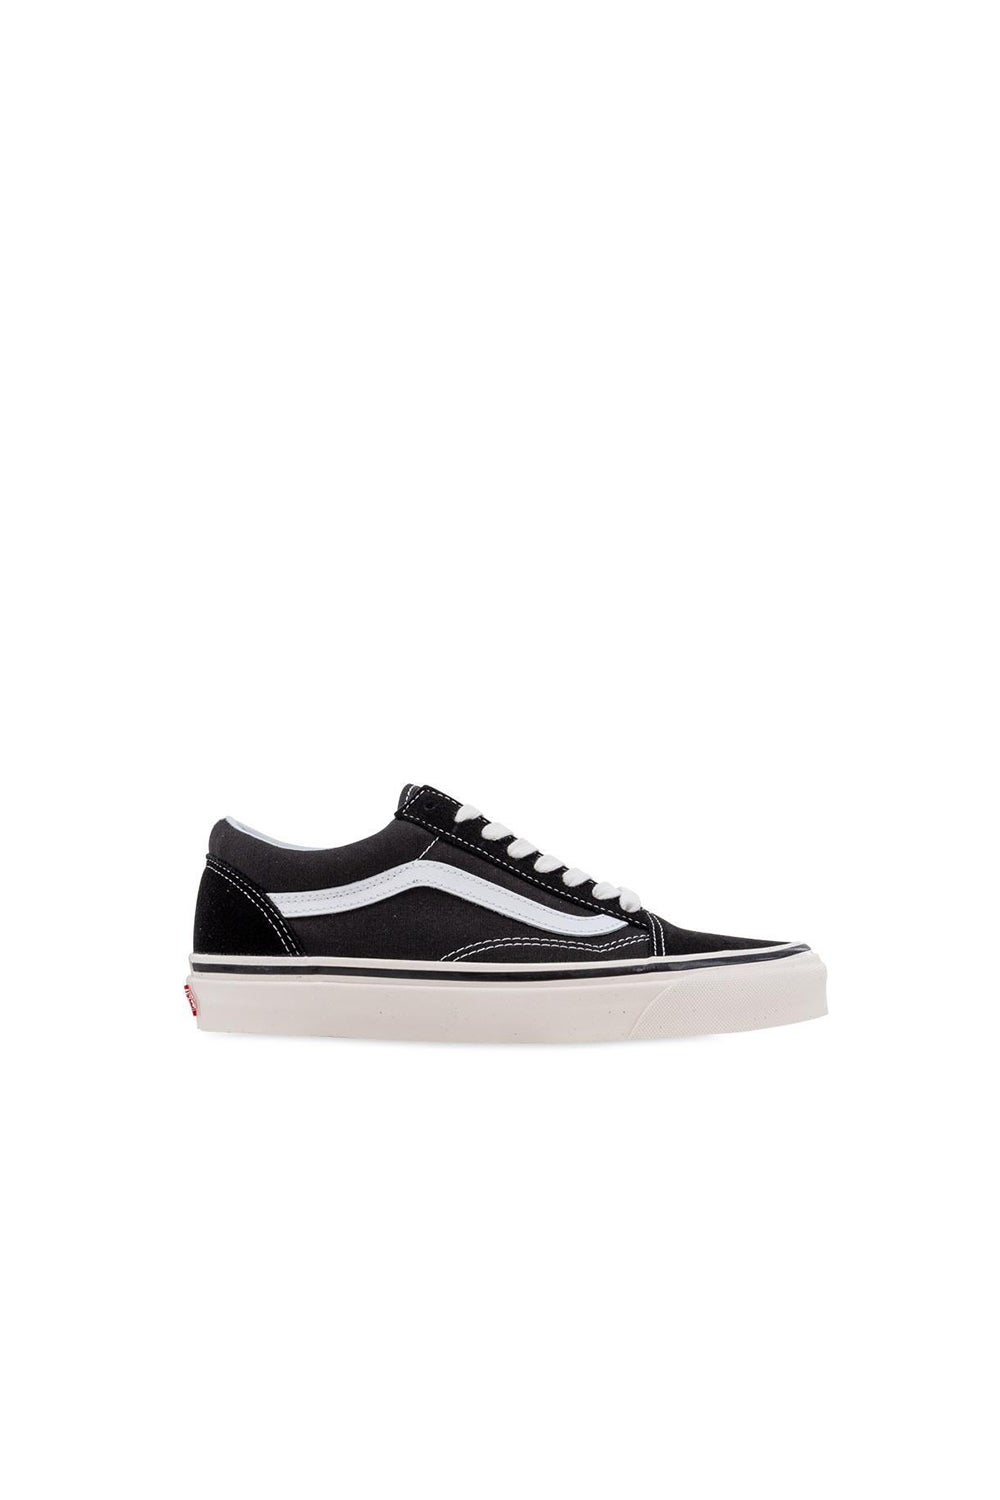 Vans Anaheim Old Skool 36 DX Black/True White